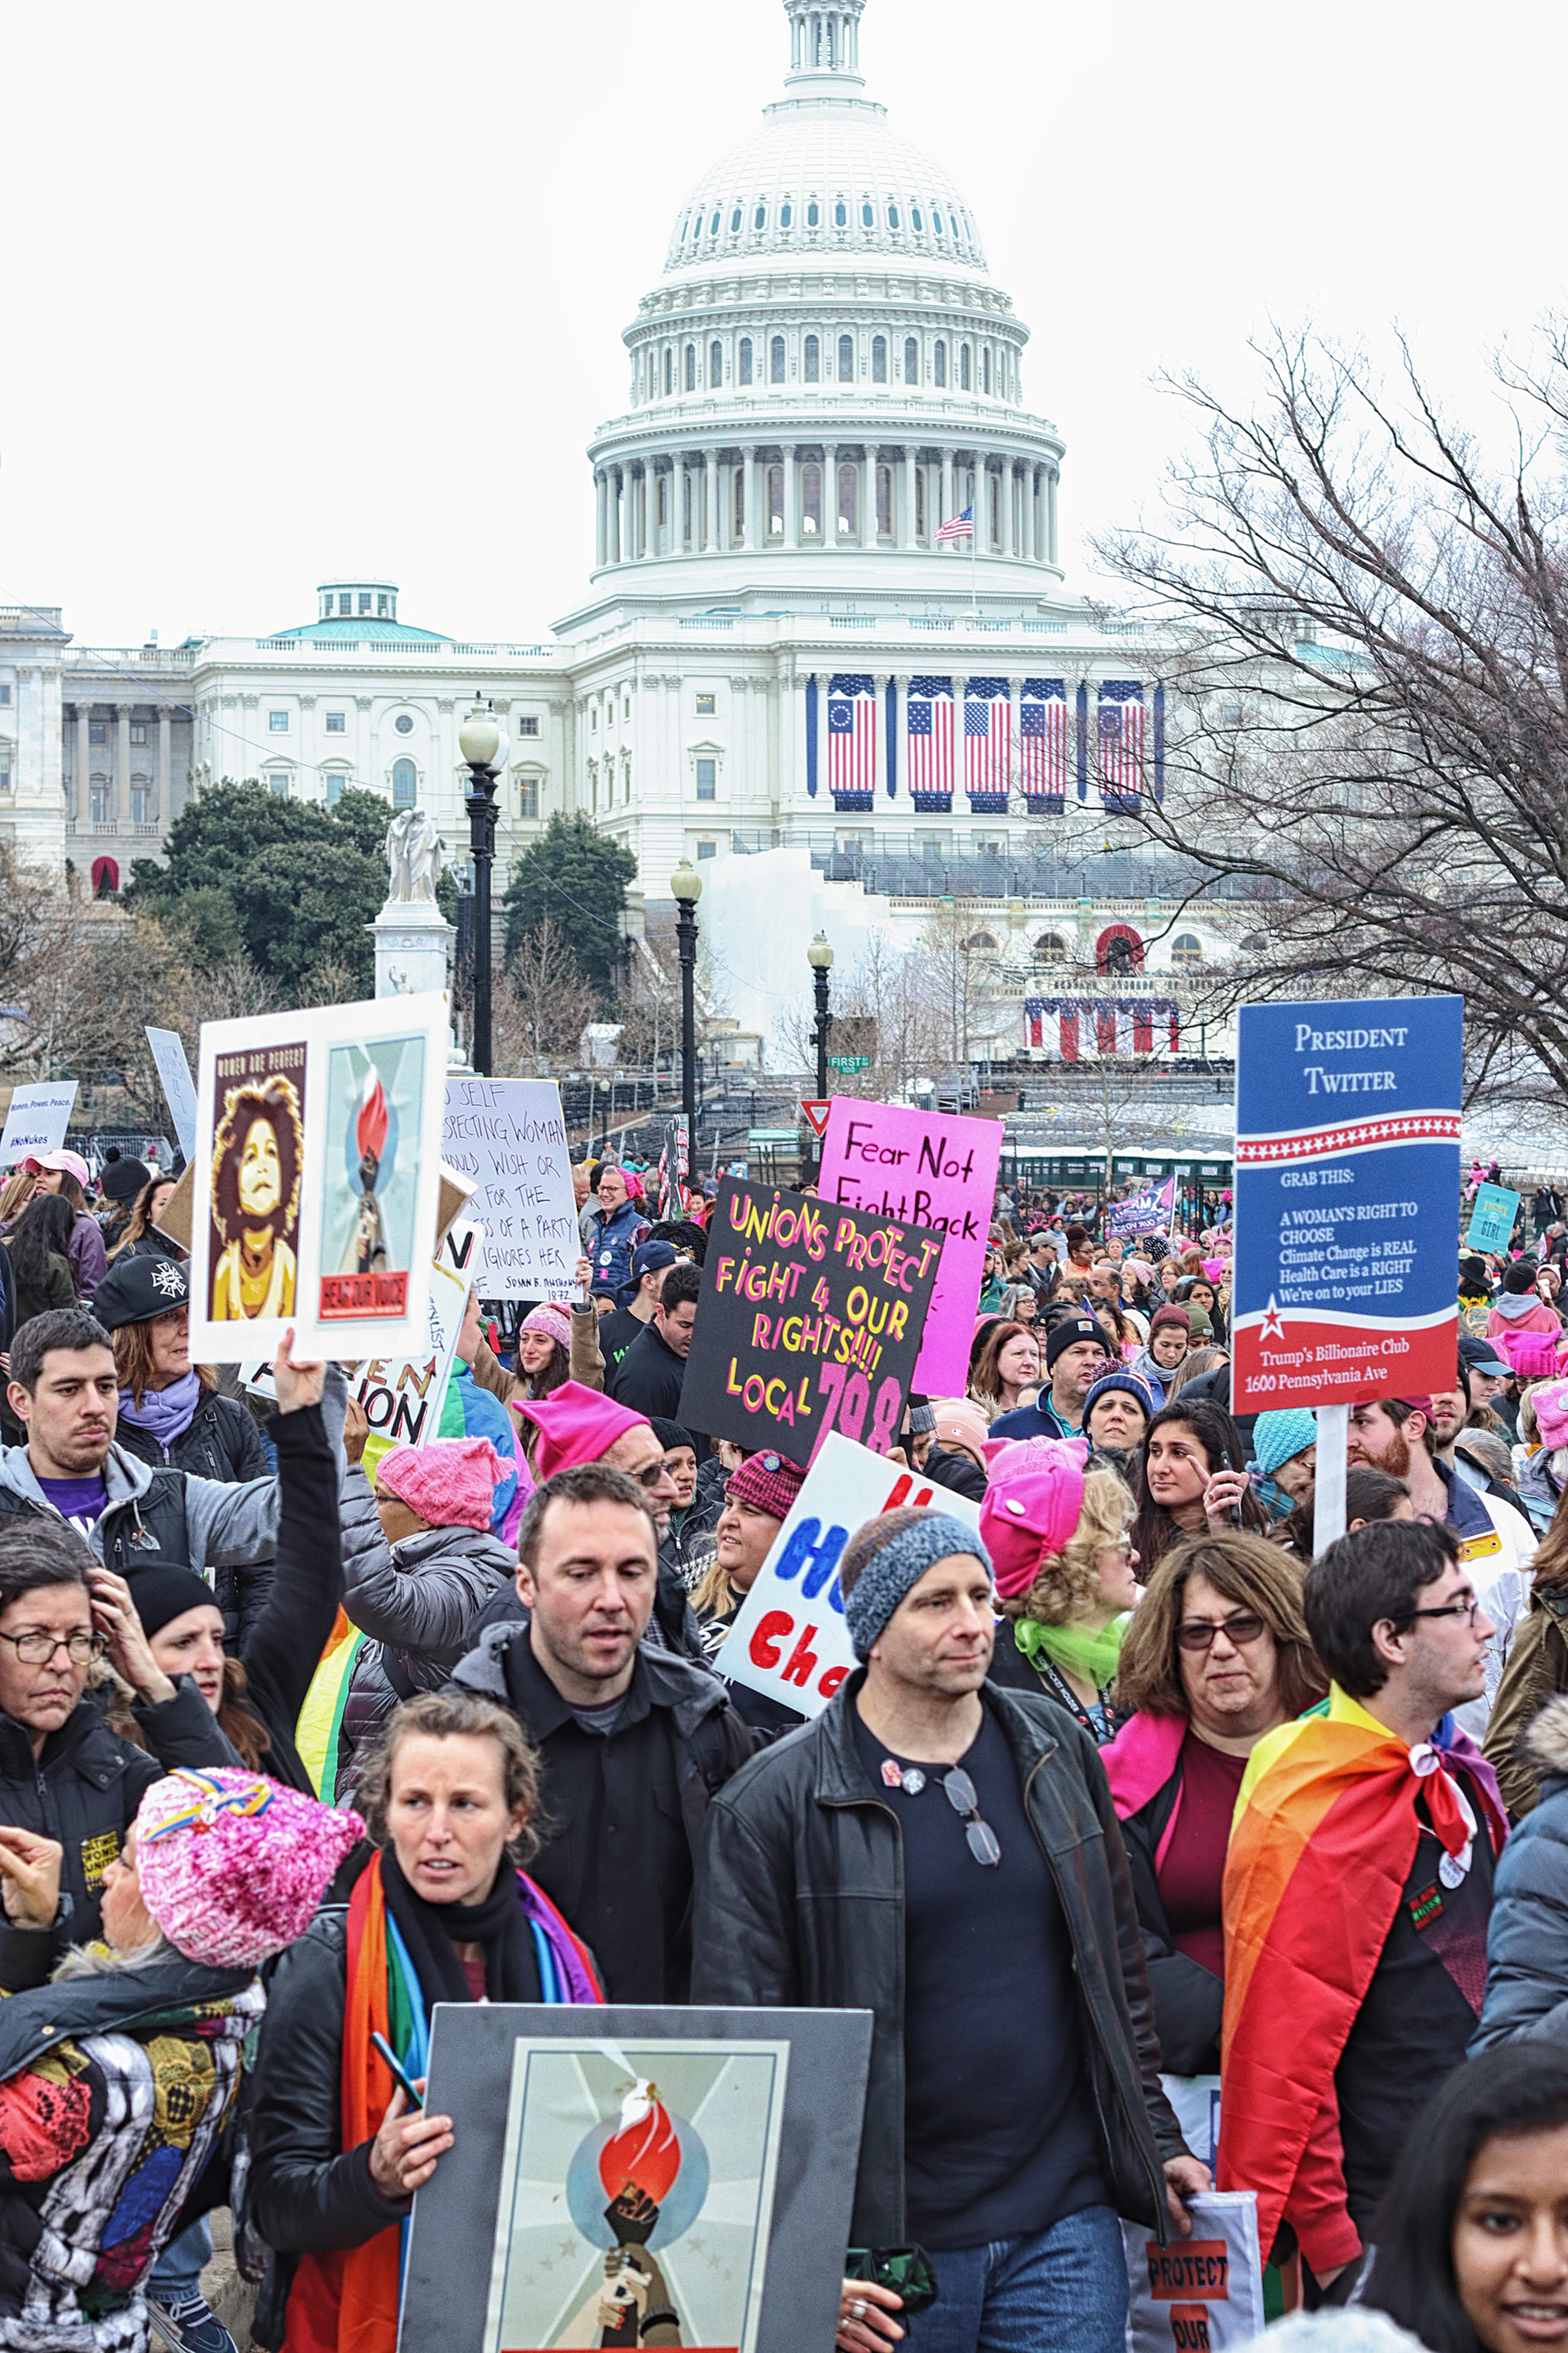 Flashback: Memories of the Women's March